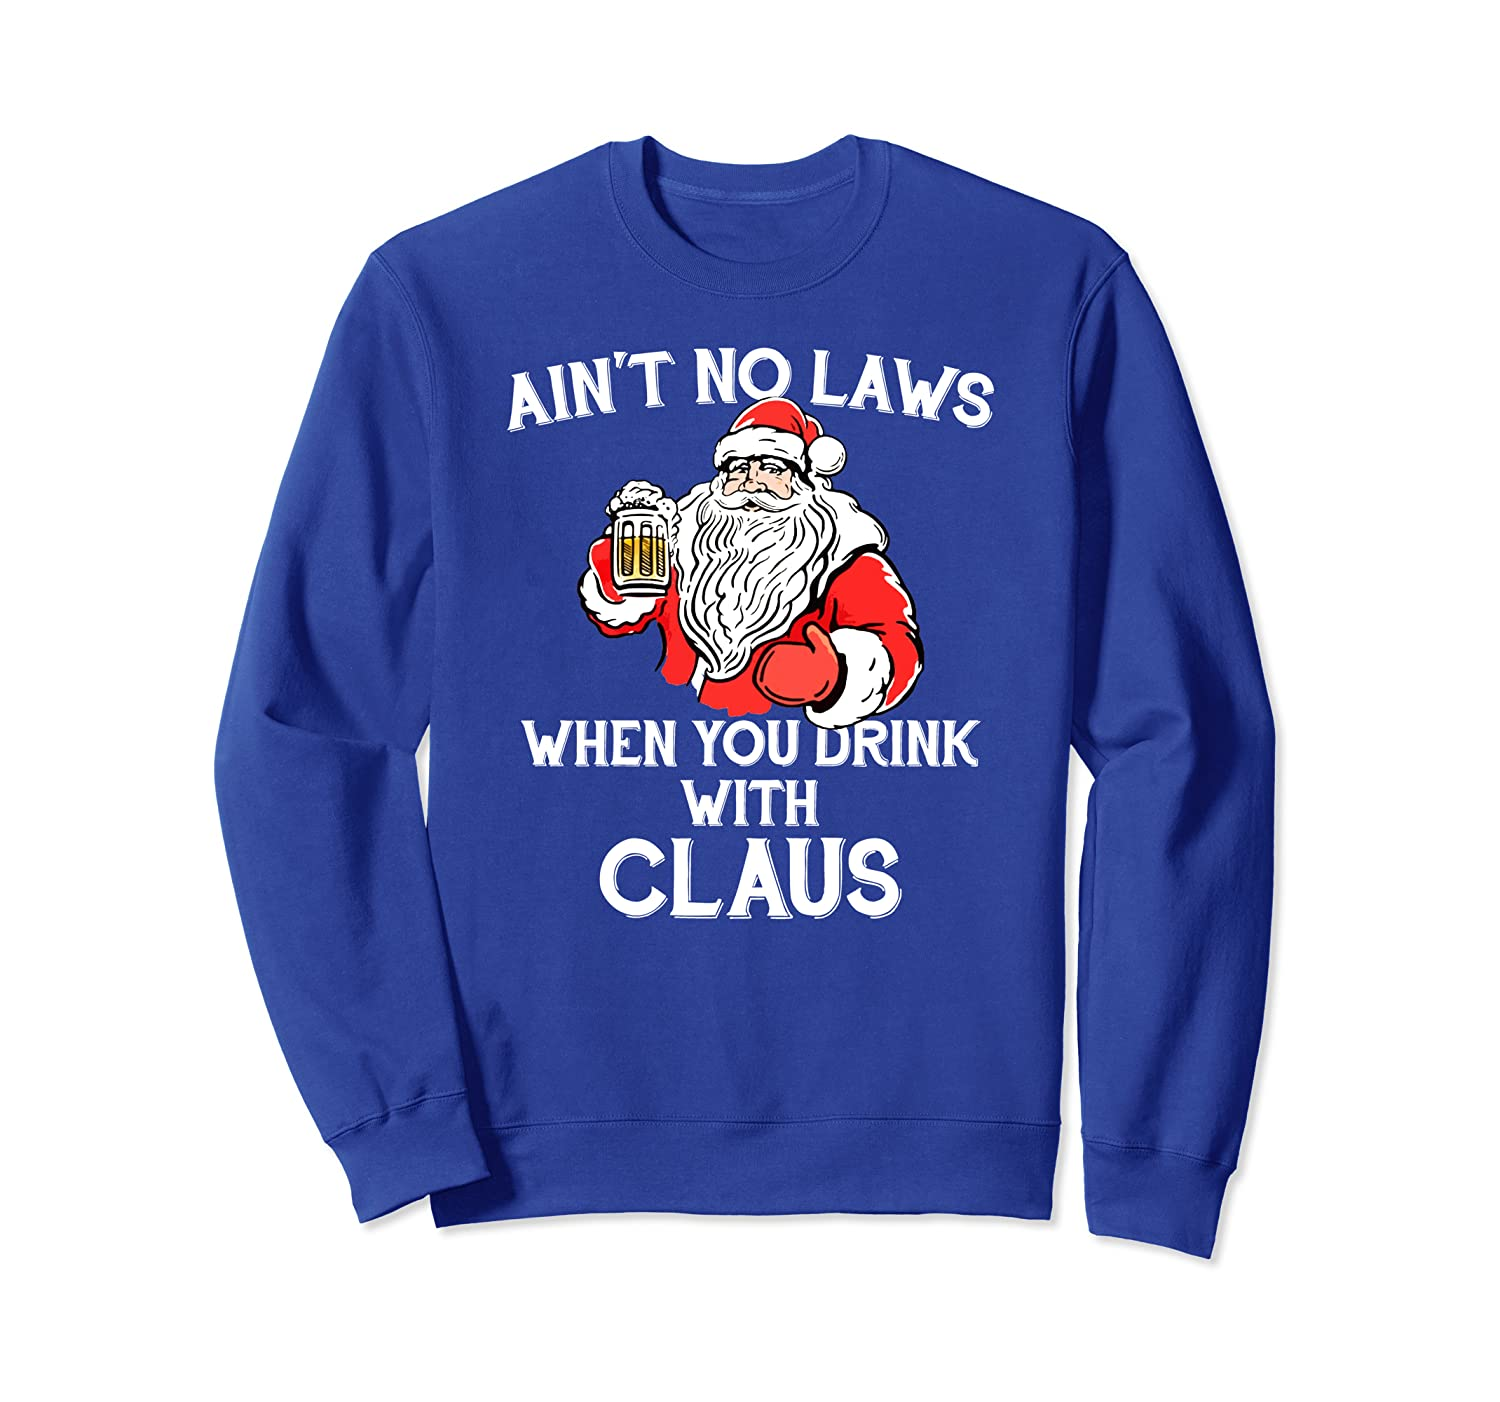 Ain't No Laws When You Drink With Claus NEW 2019 Christmas Sweatshirt-TH